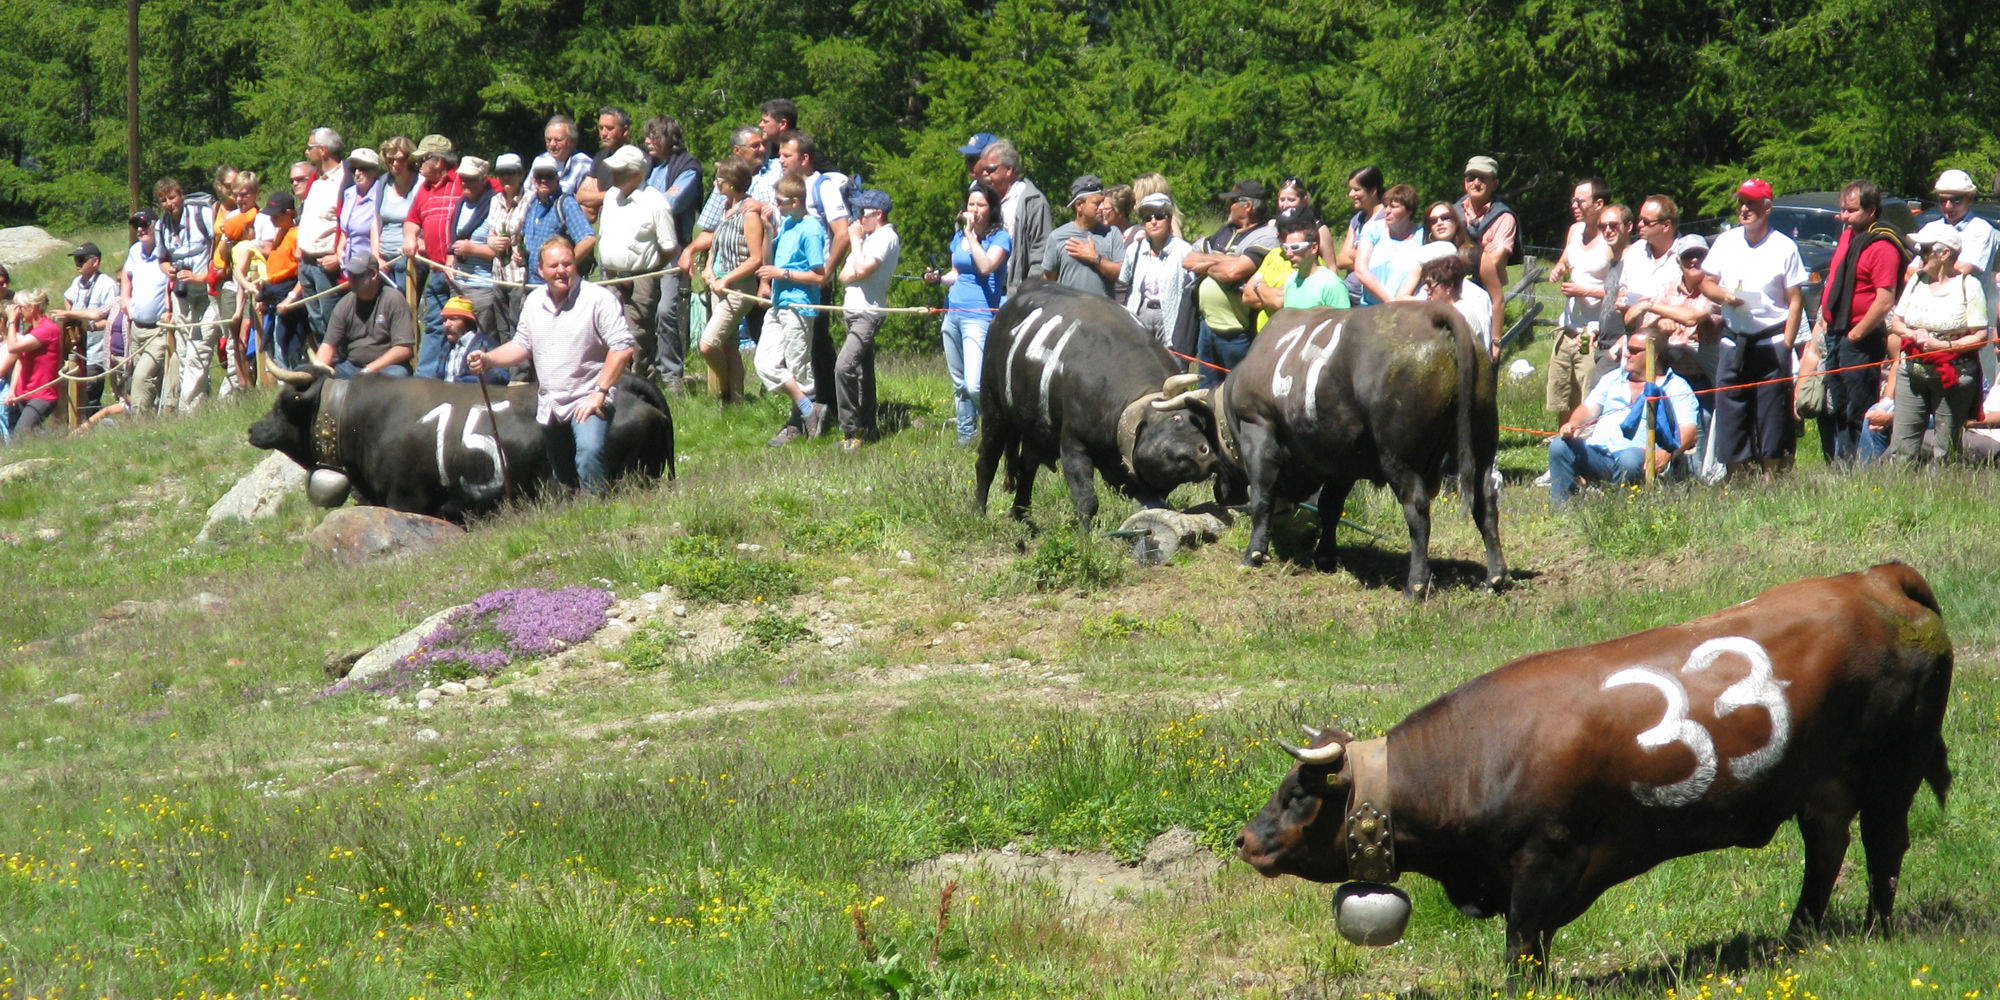 Cow fights in the Free Republic of Holidays Saas-Fee